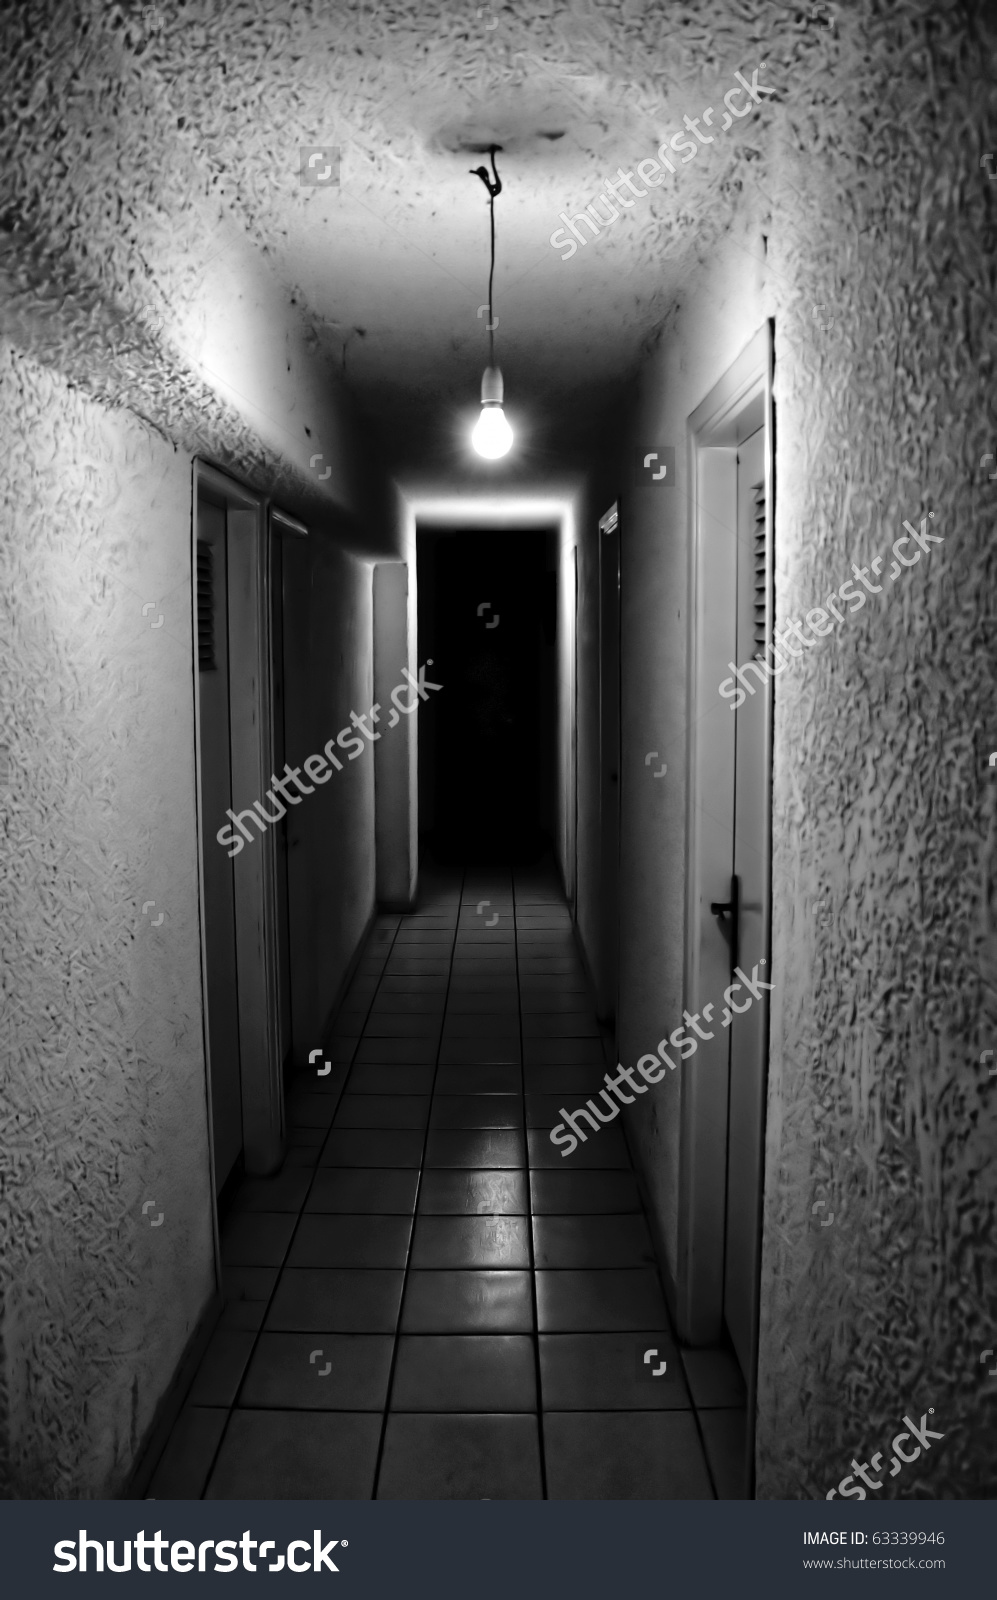 Dim Light Glowing Dark Underground Corridor Stock Photo 63339946.